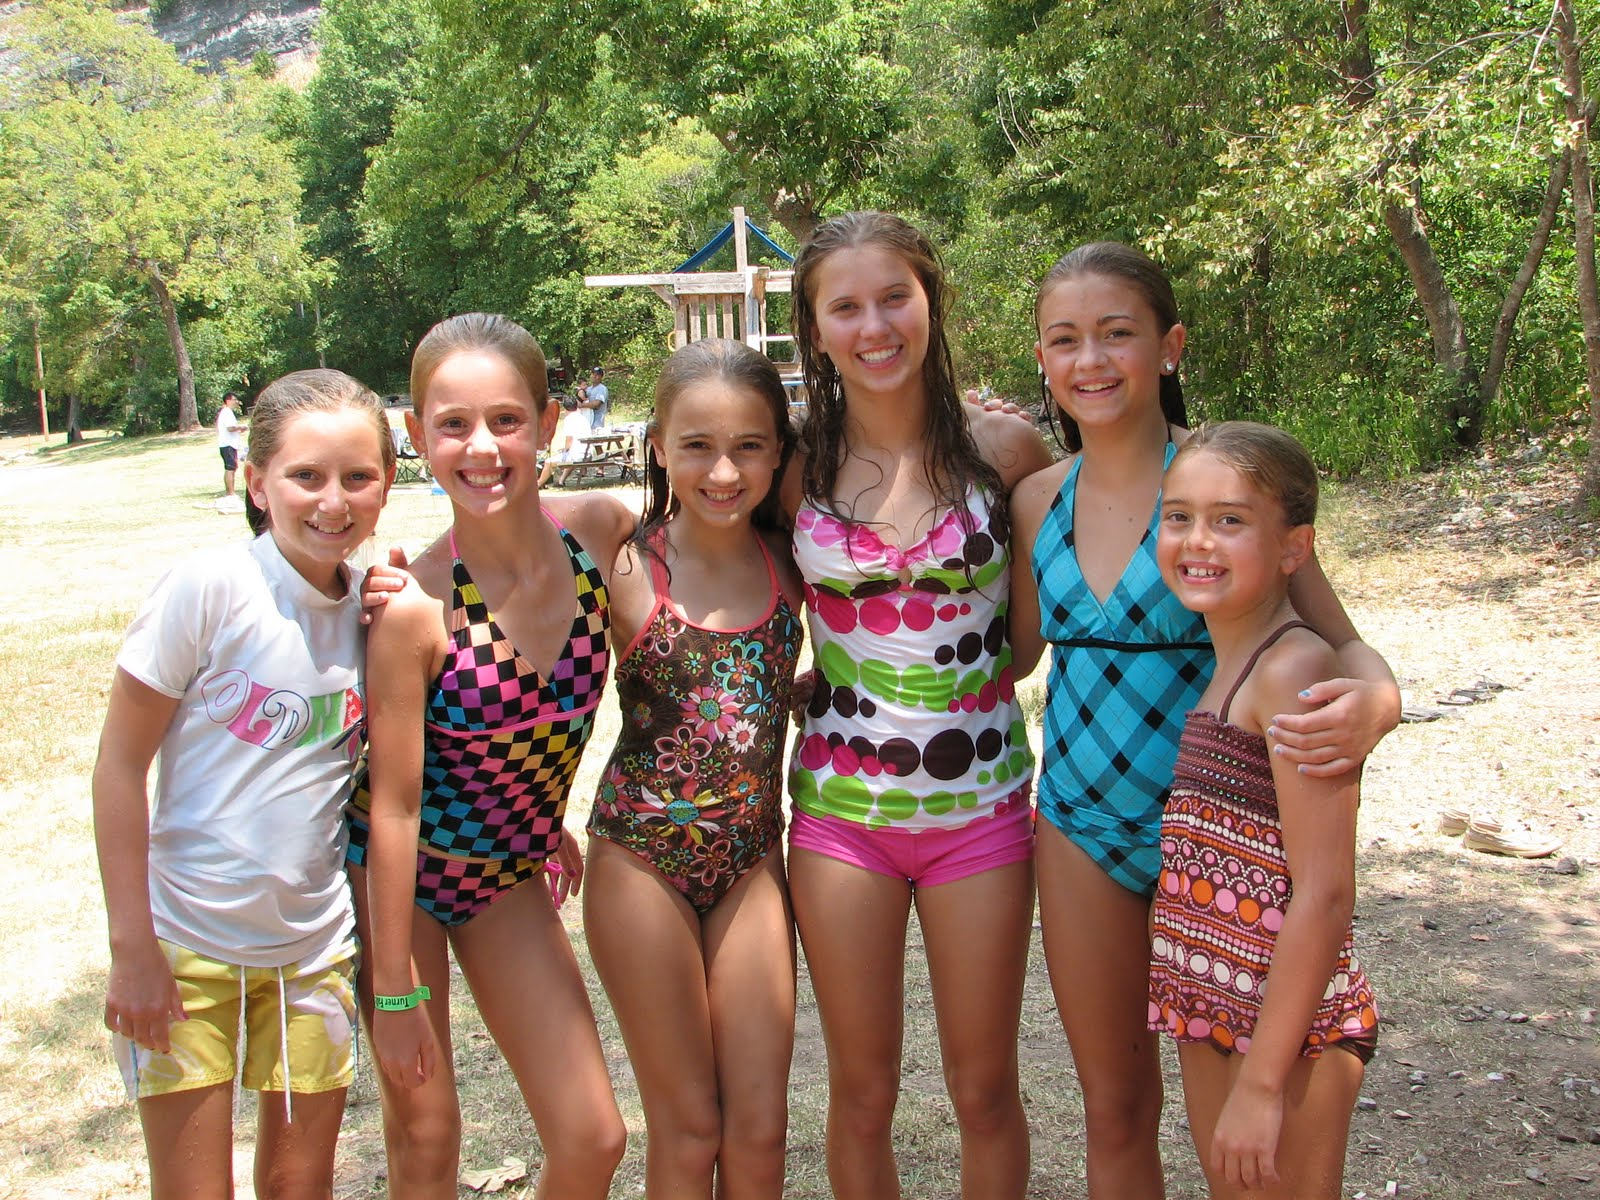 Cute Middle School Girls Swimsuit